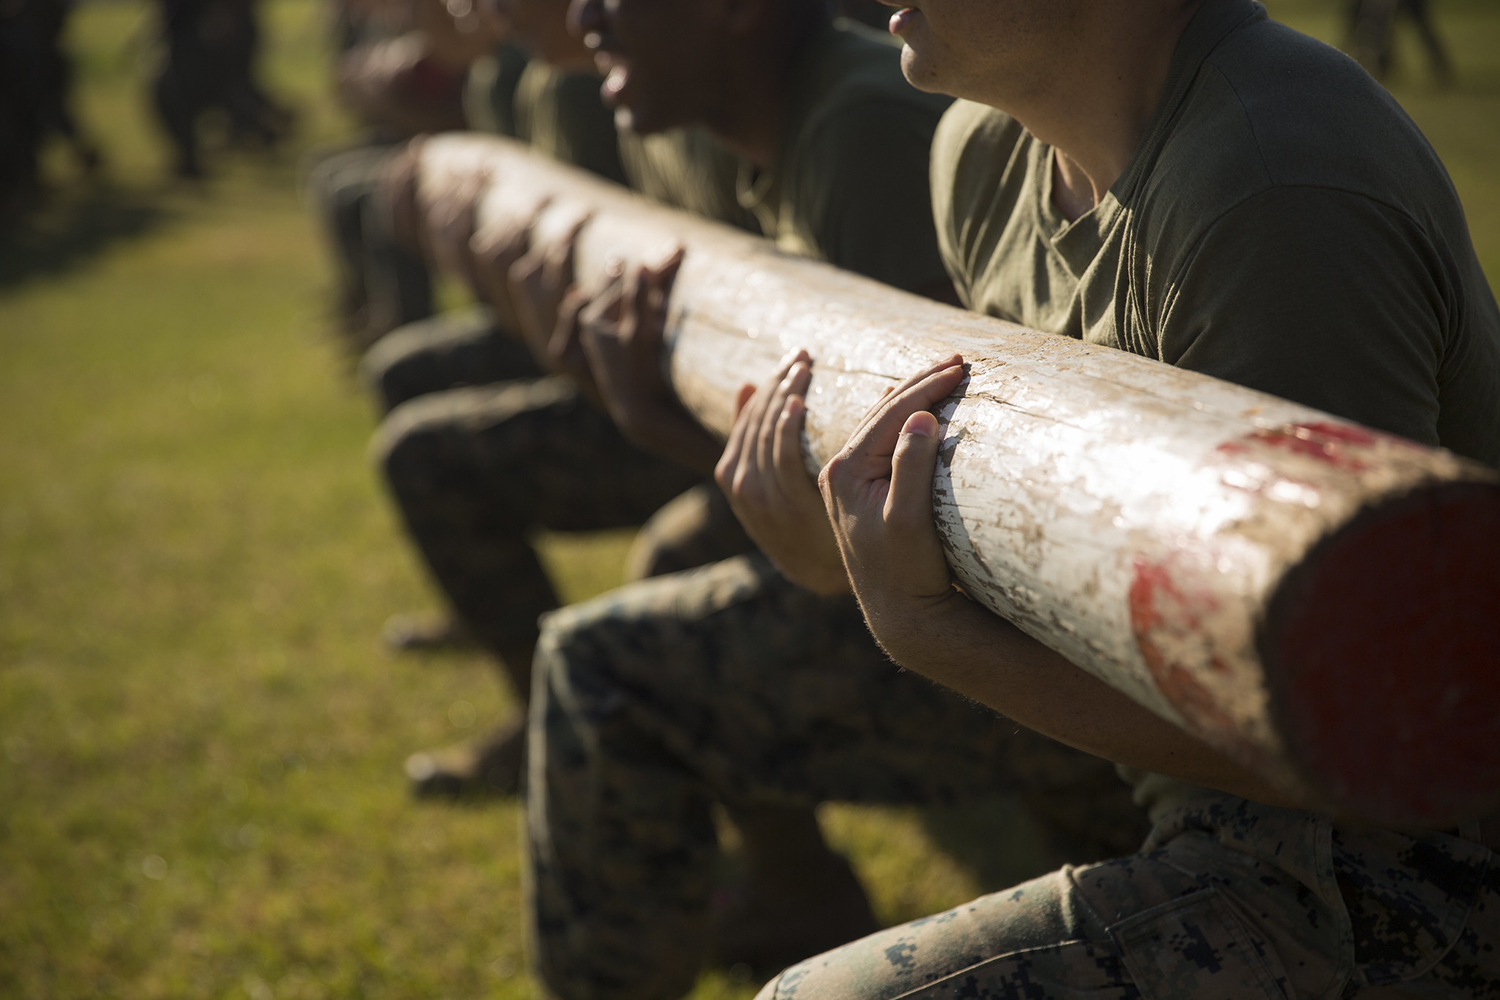 U.S. Marines with the Logistics Combat Element (LCE), Marine Rotational Force – Darwin (MRF-D), conduct log lunges during a field meet at Robertson Barracks, Darwin, Australia, July 22, 2019. (Staff Sgt. Jordan E. Gilbert/Marine Corps)